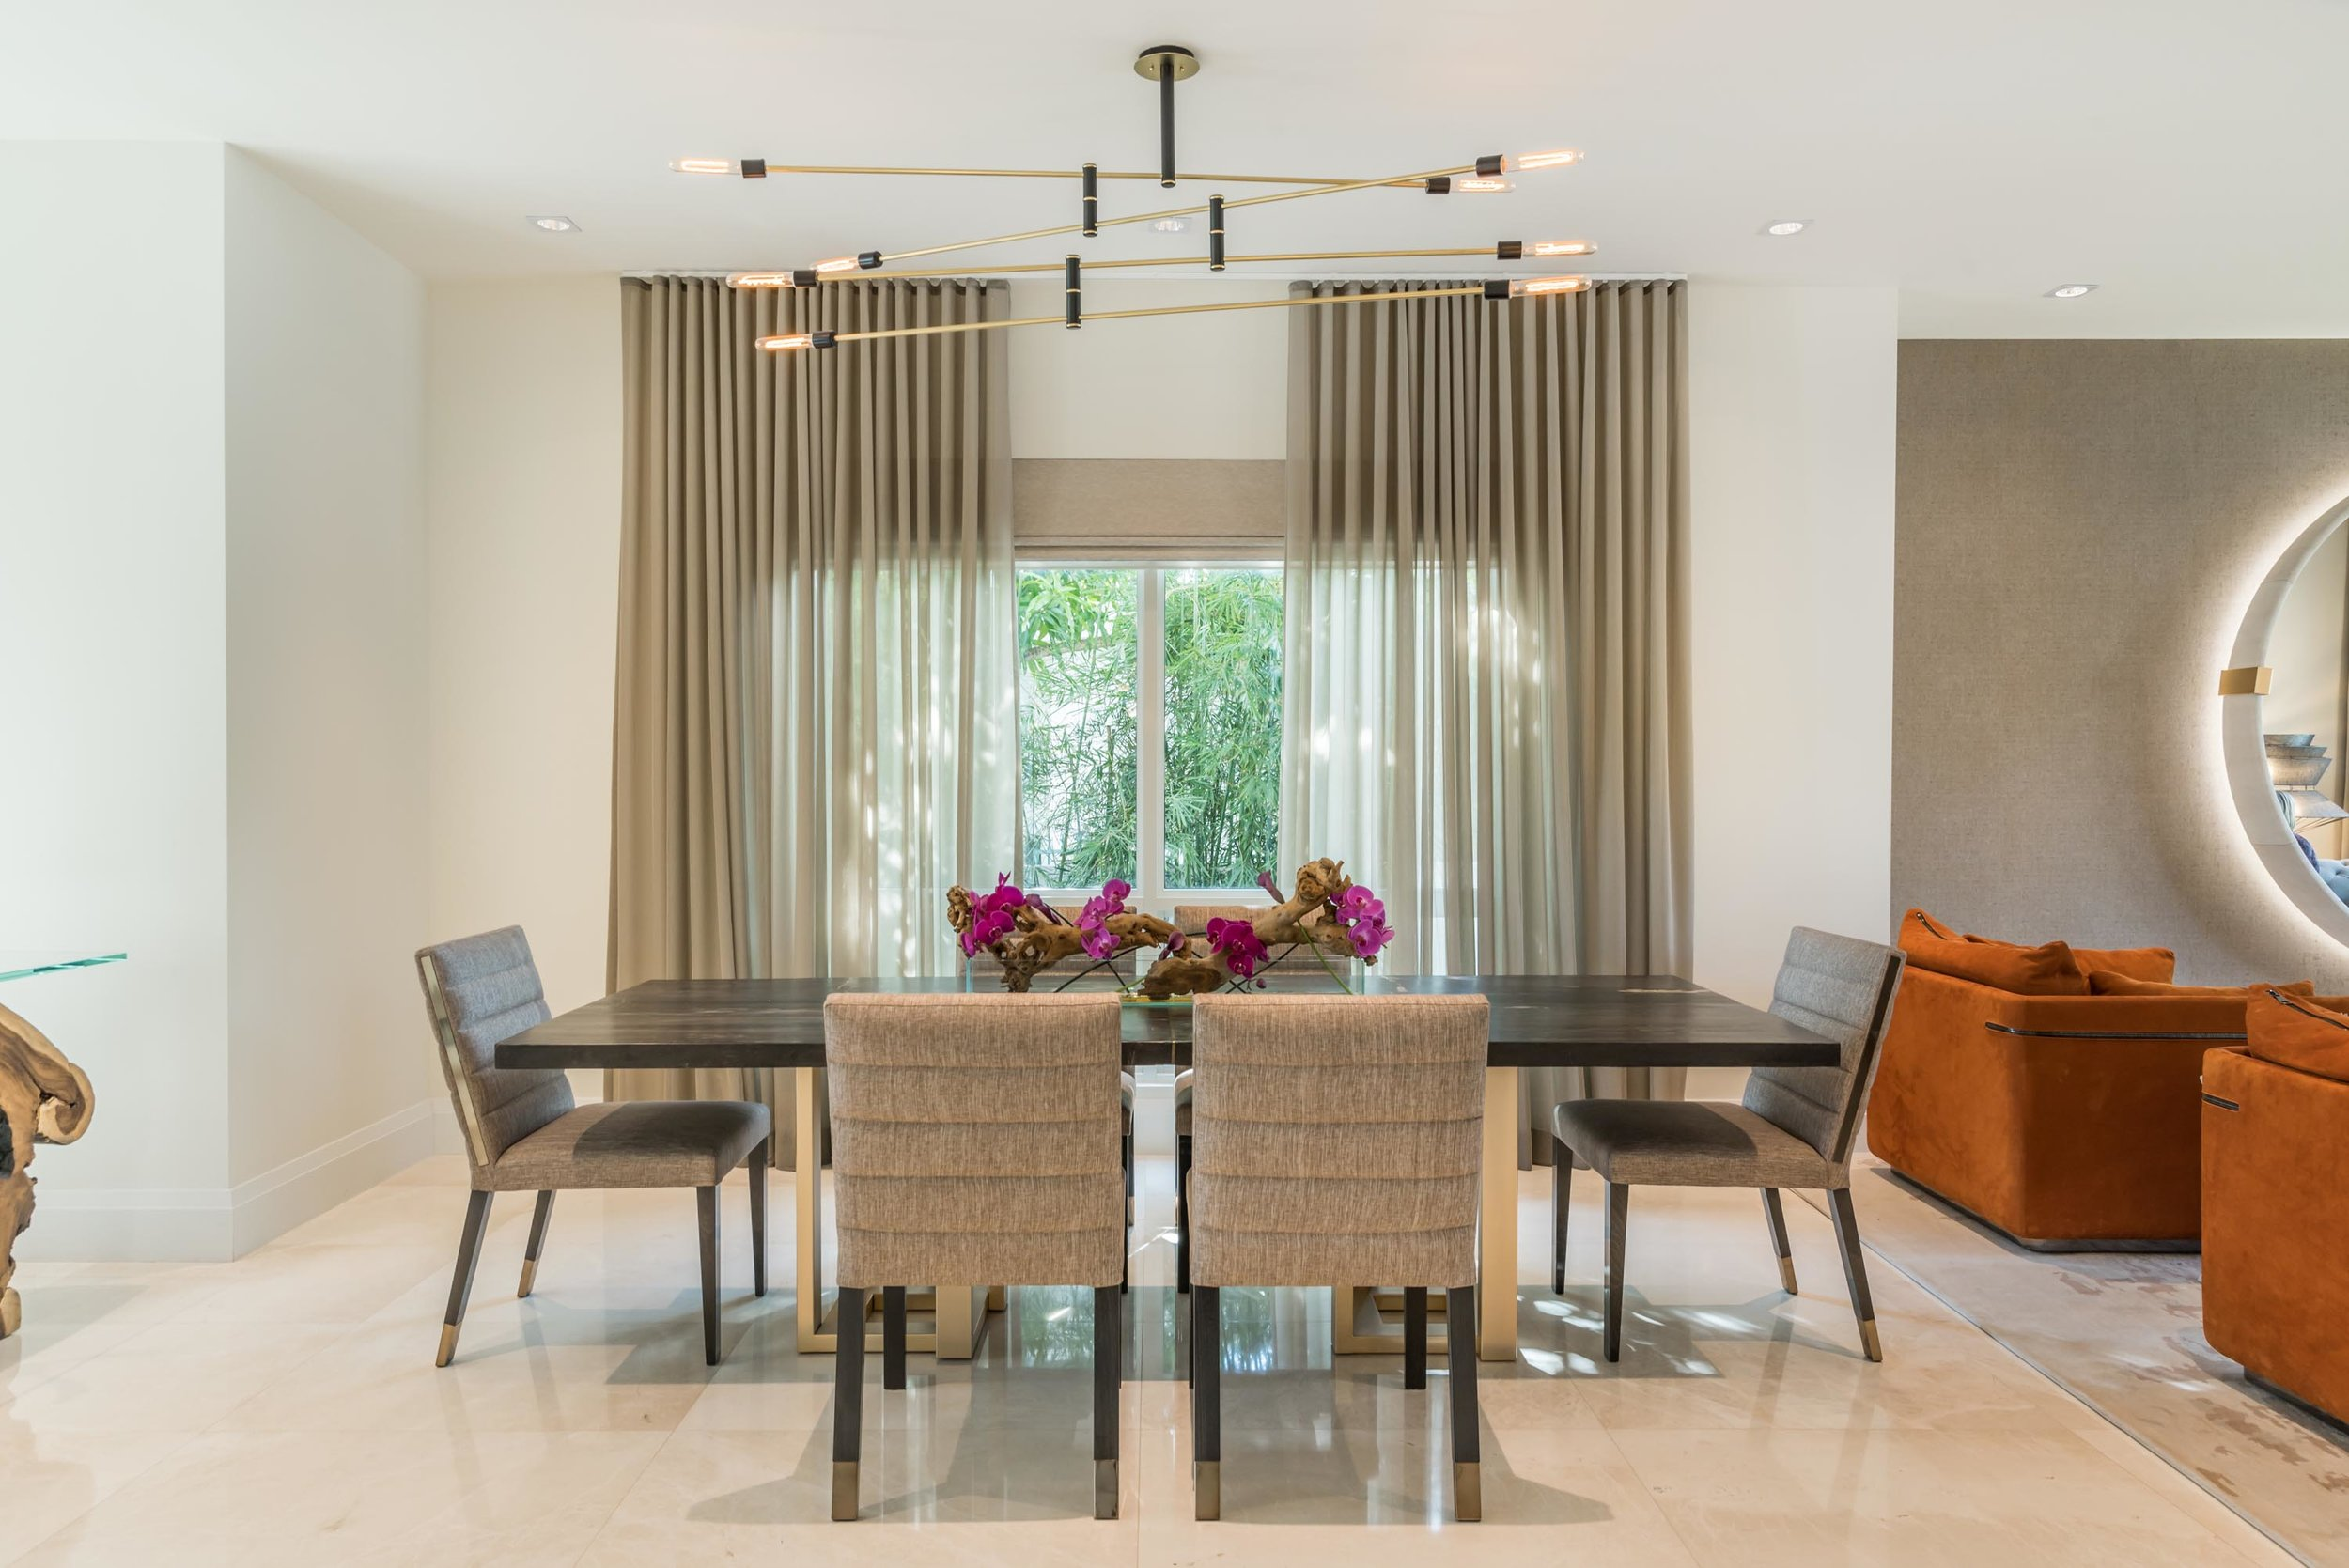 Elegant dining room with wooden table, soft seat chairs, window with curtains and custom chandelier